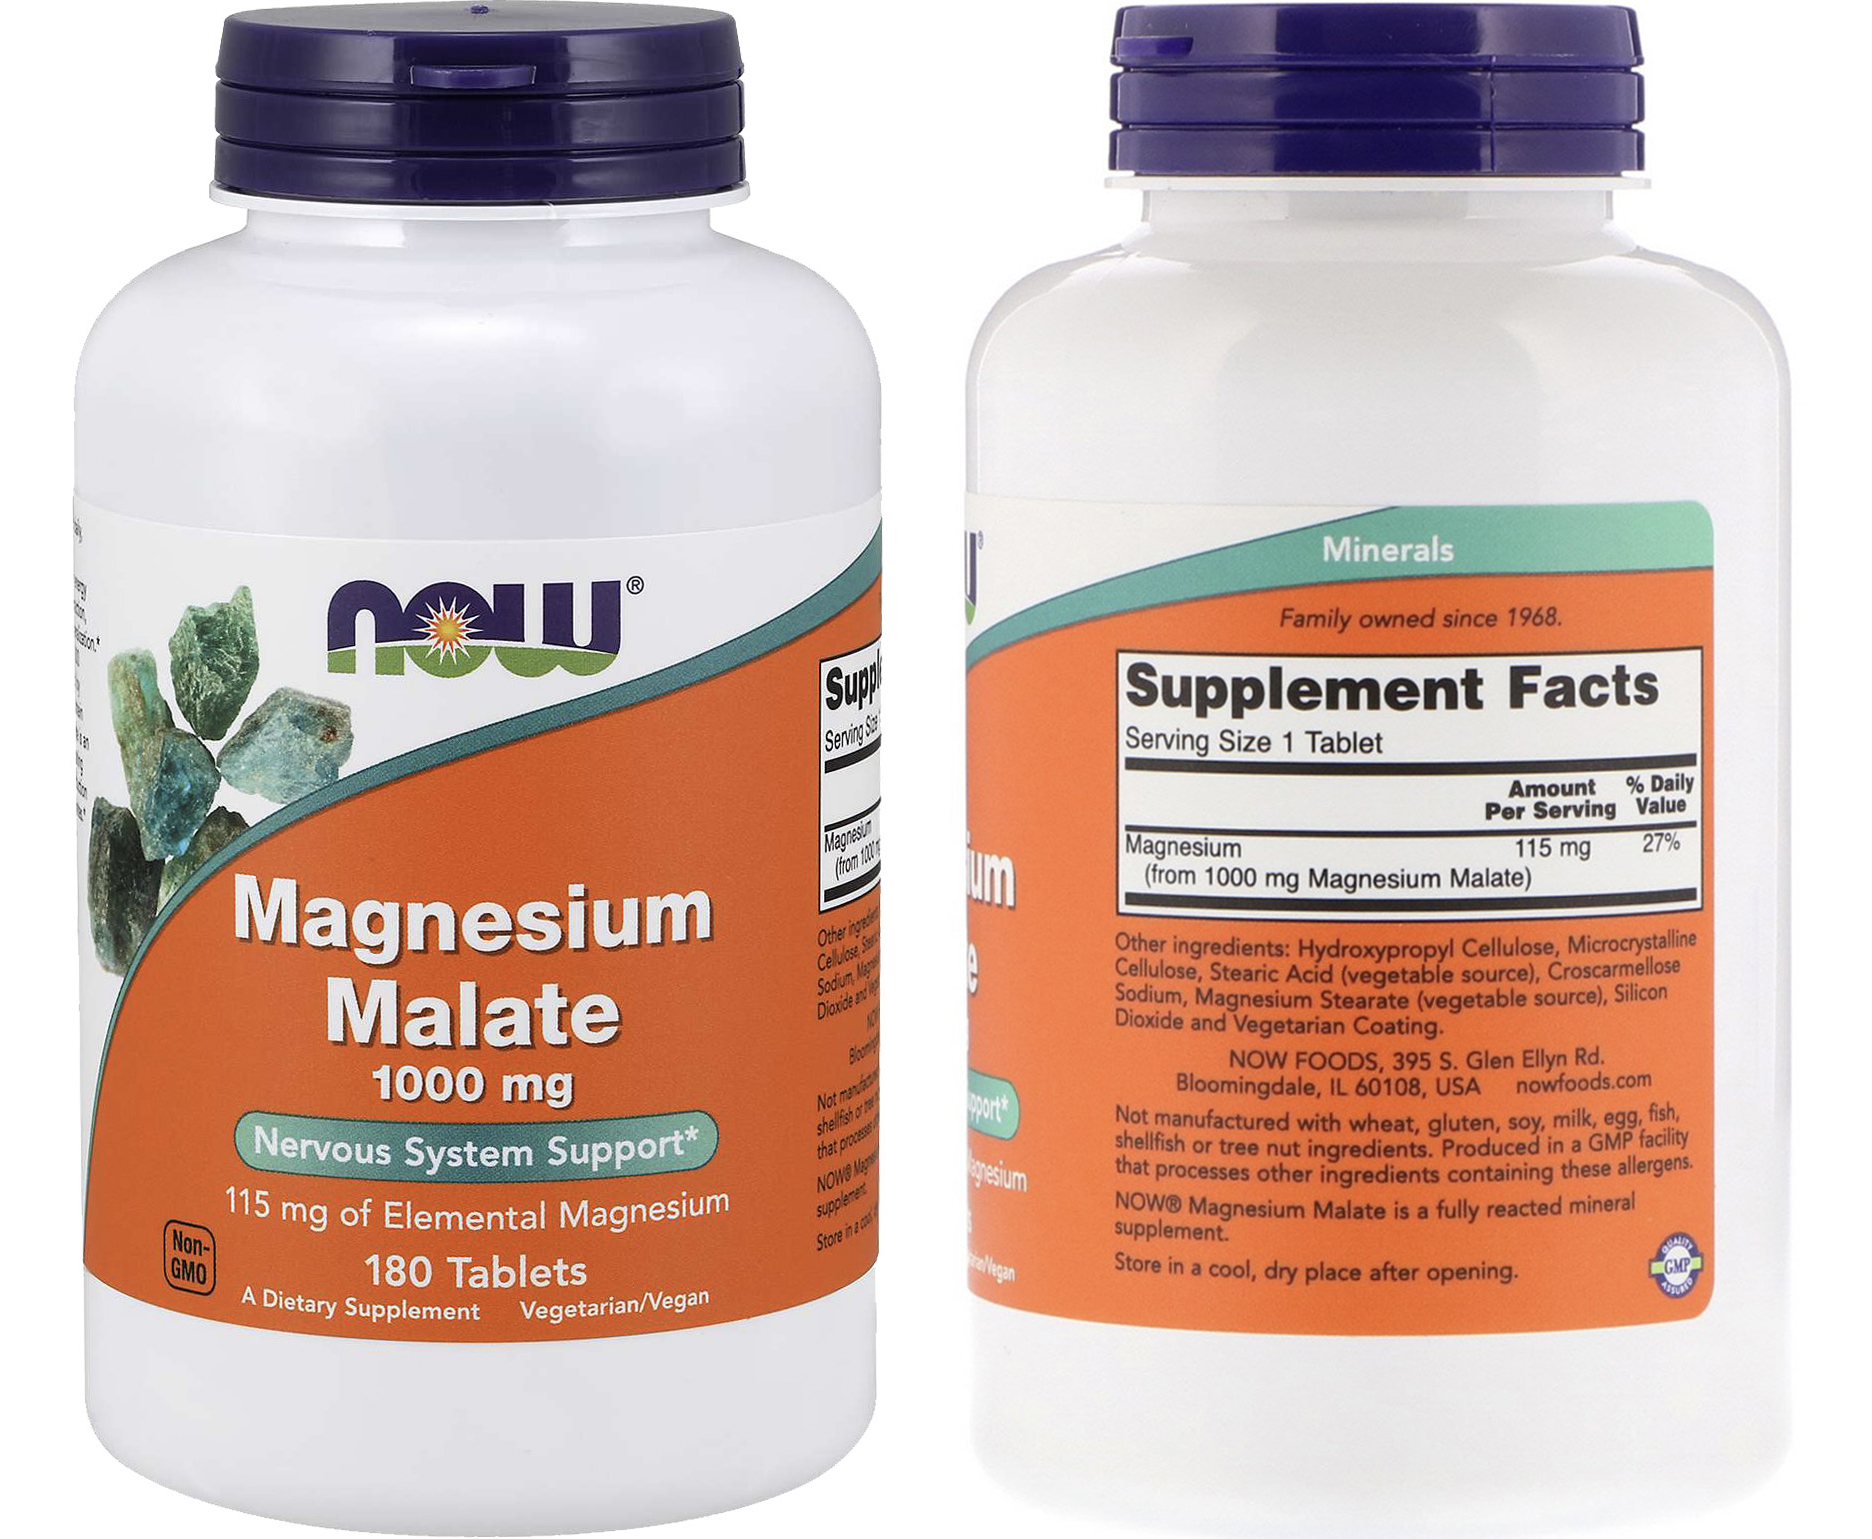 magnesium malate 1000 mg